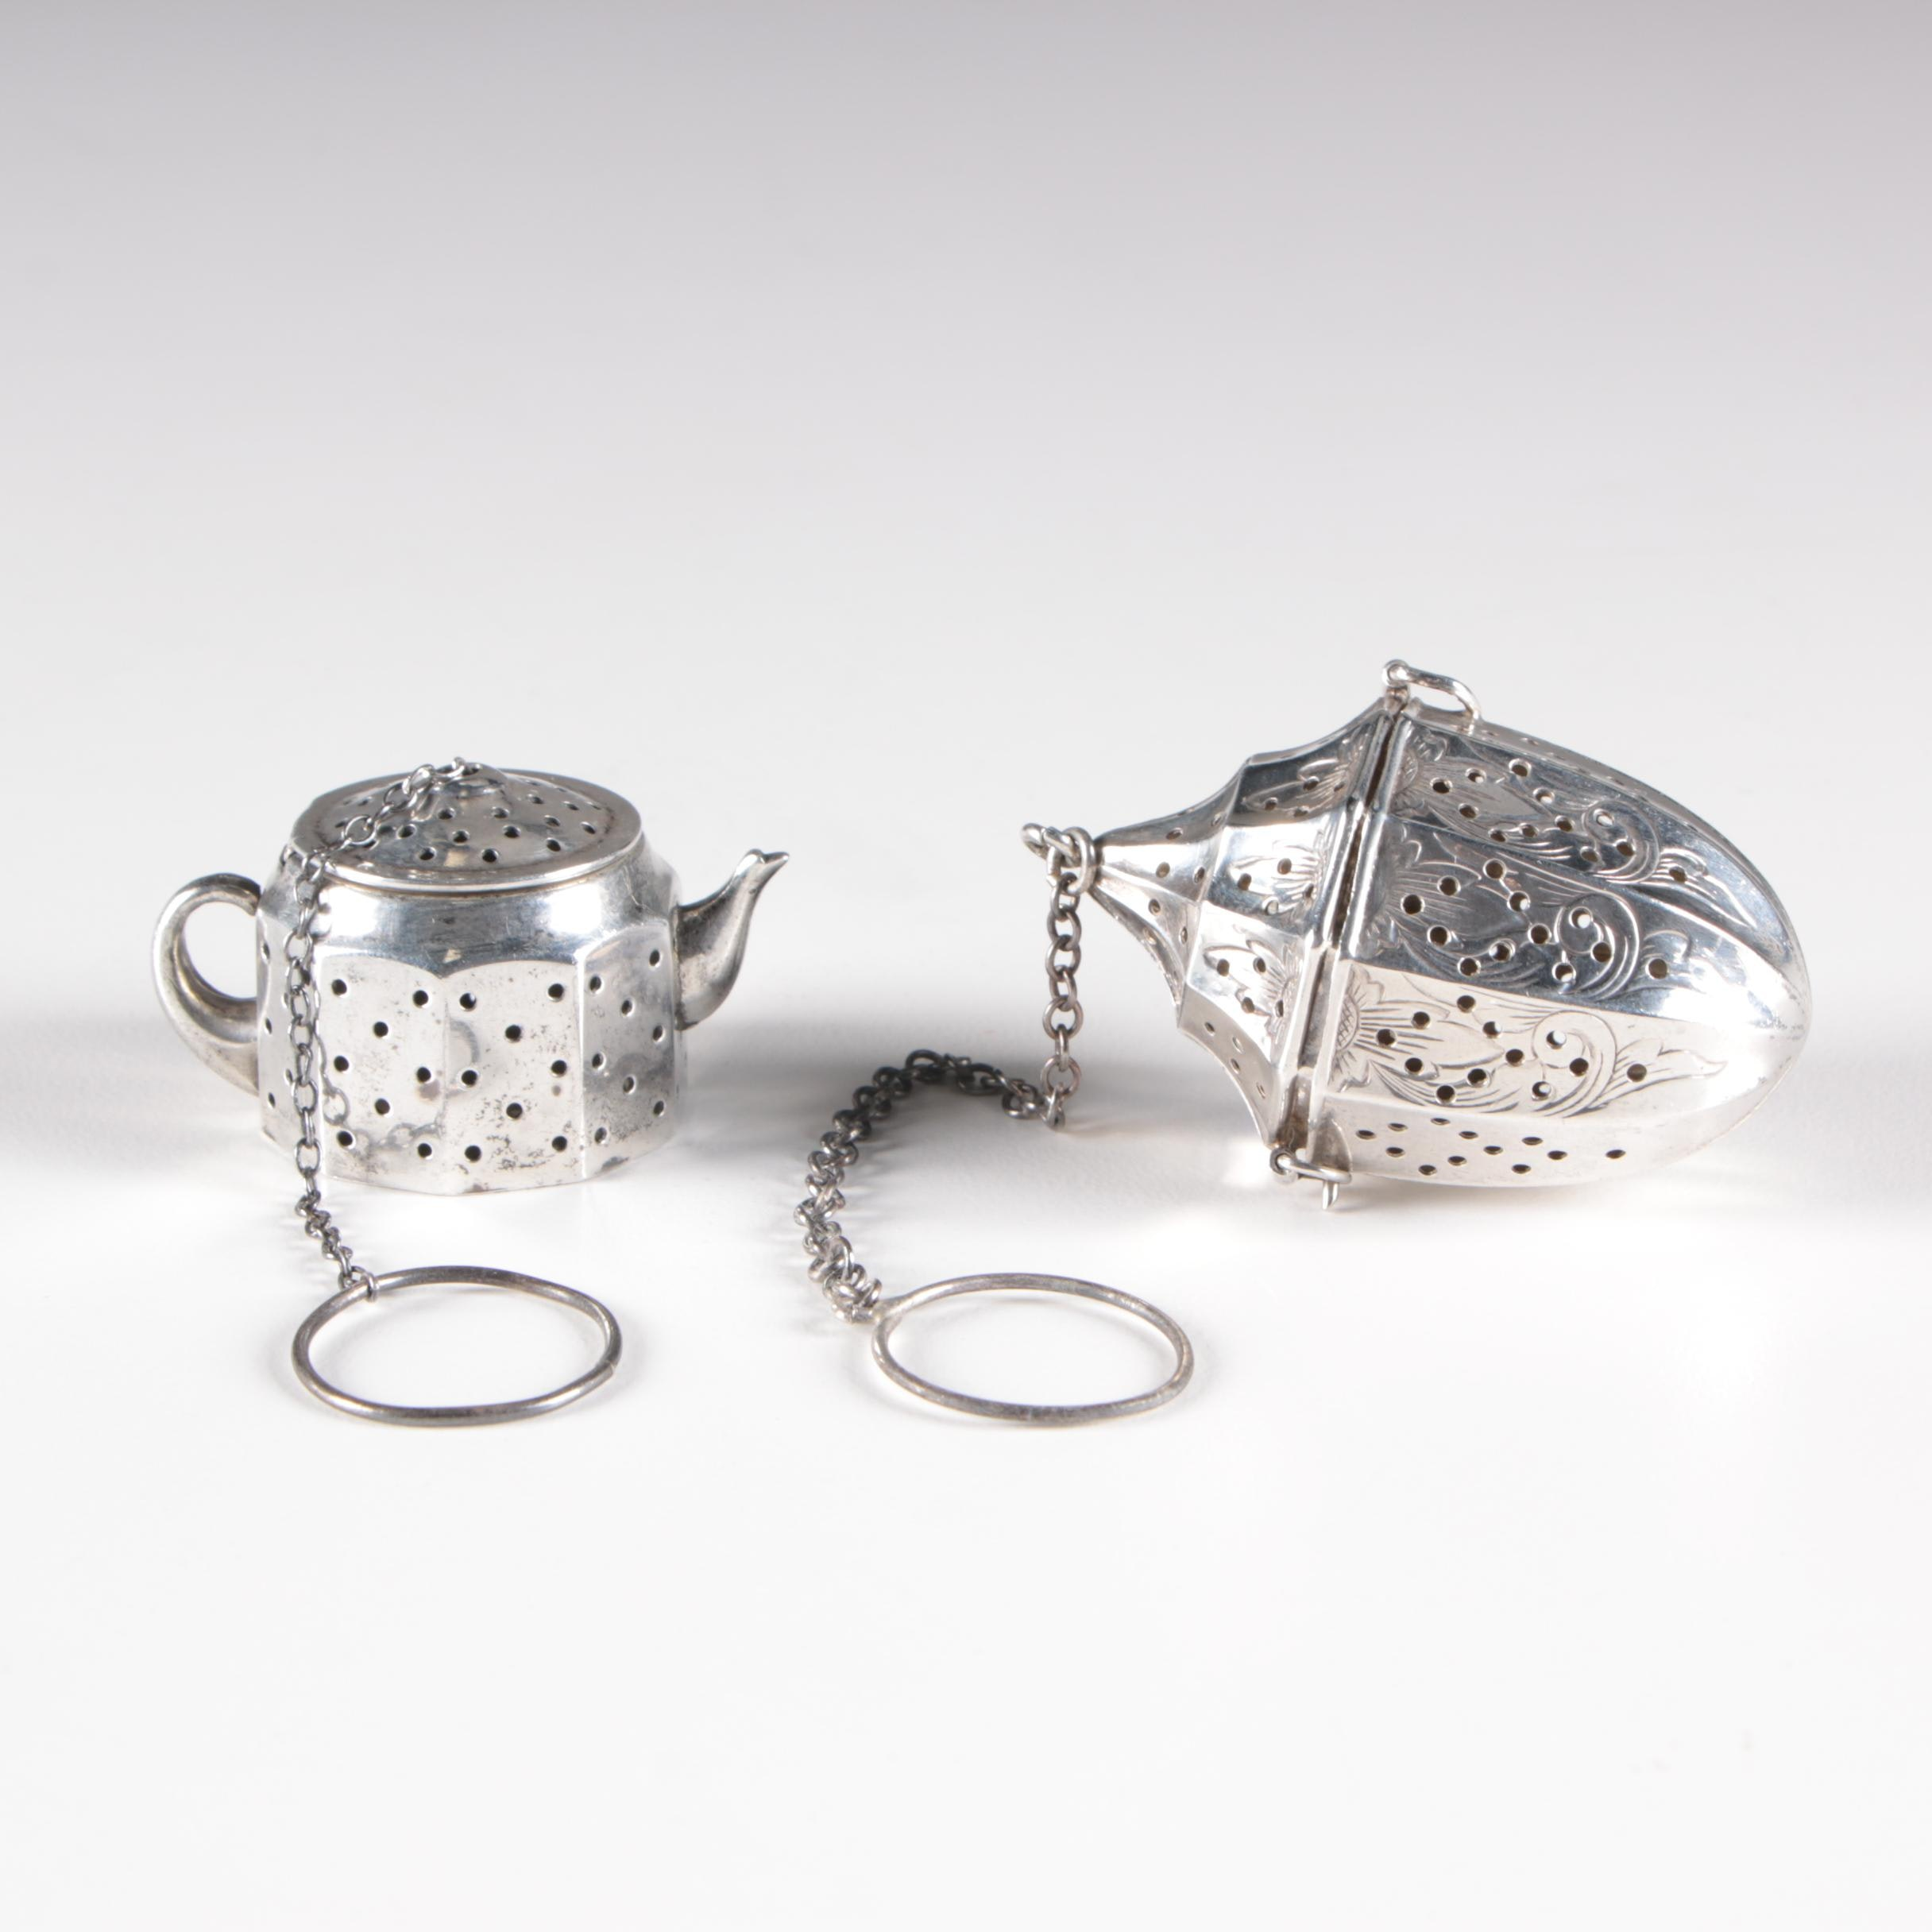 American Sterling Silver Tea Infusers, Mid-Century/c.1940s